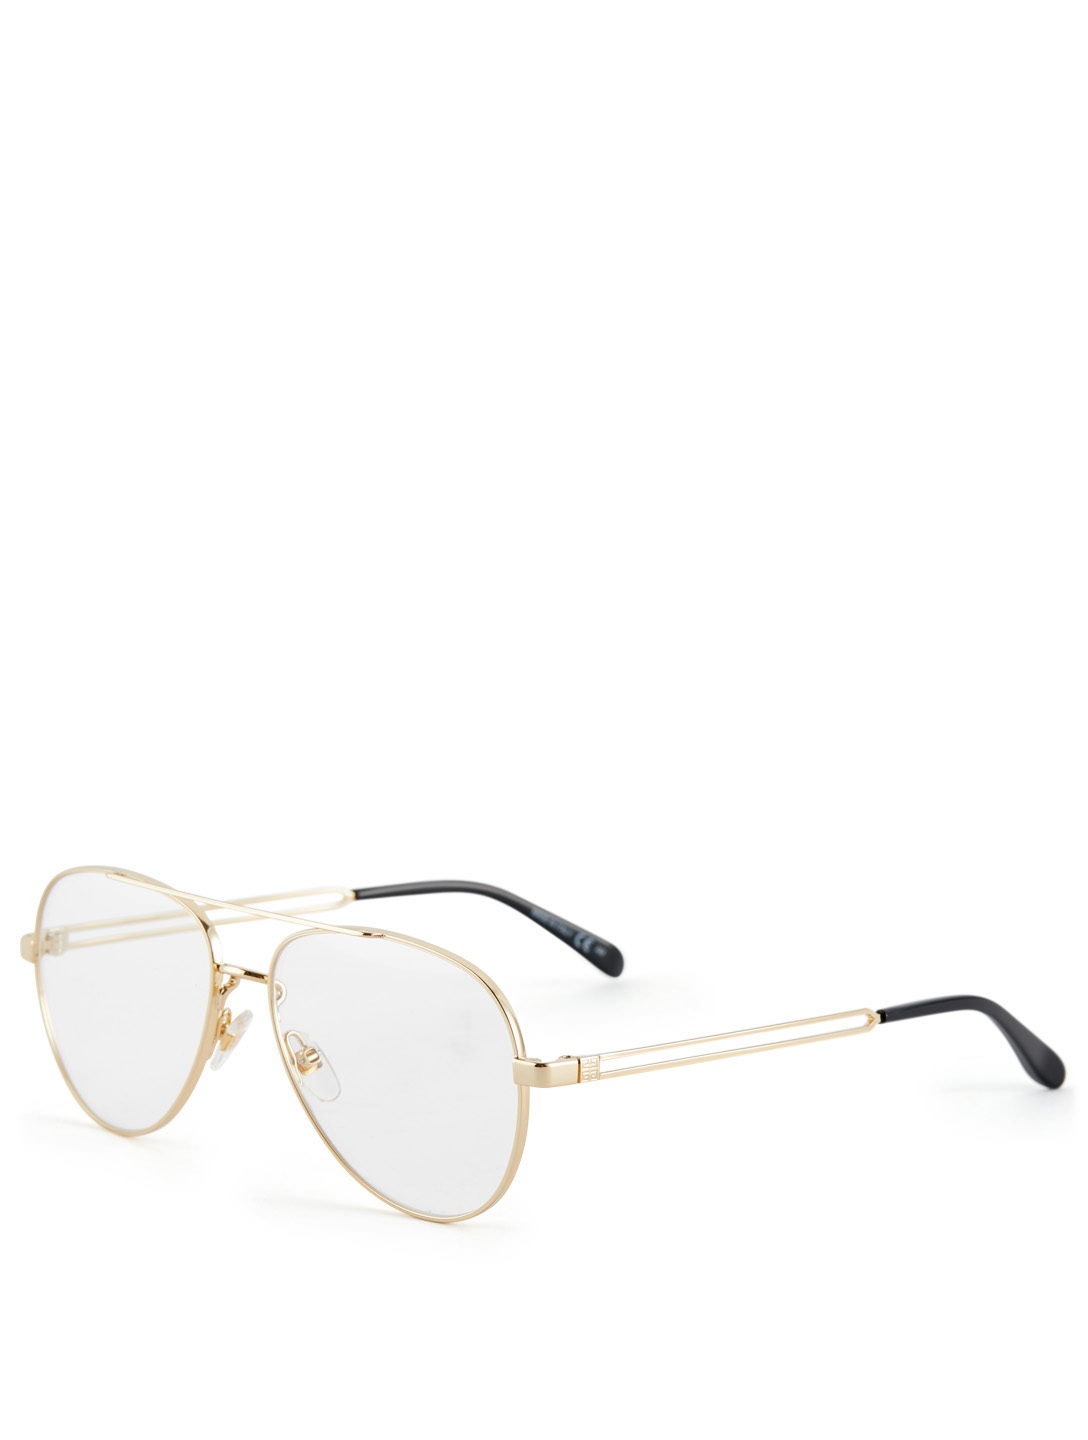 GIVENCHY Aviator Optical Glasses Womens Gold